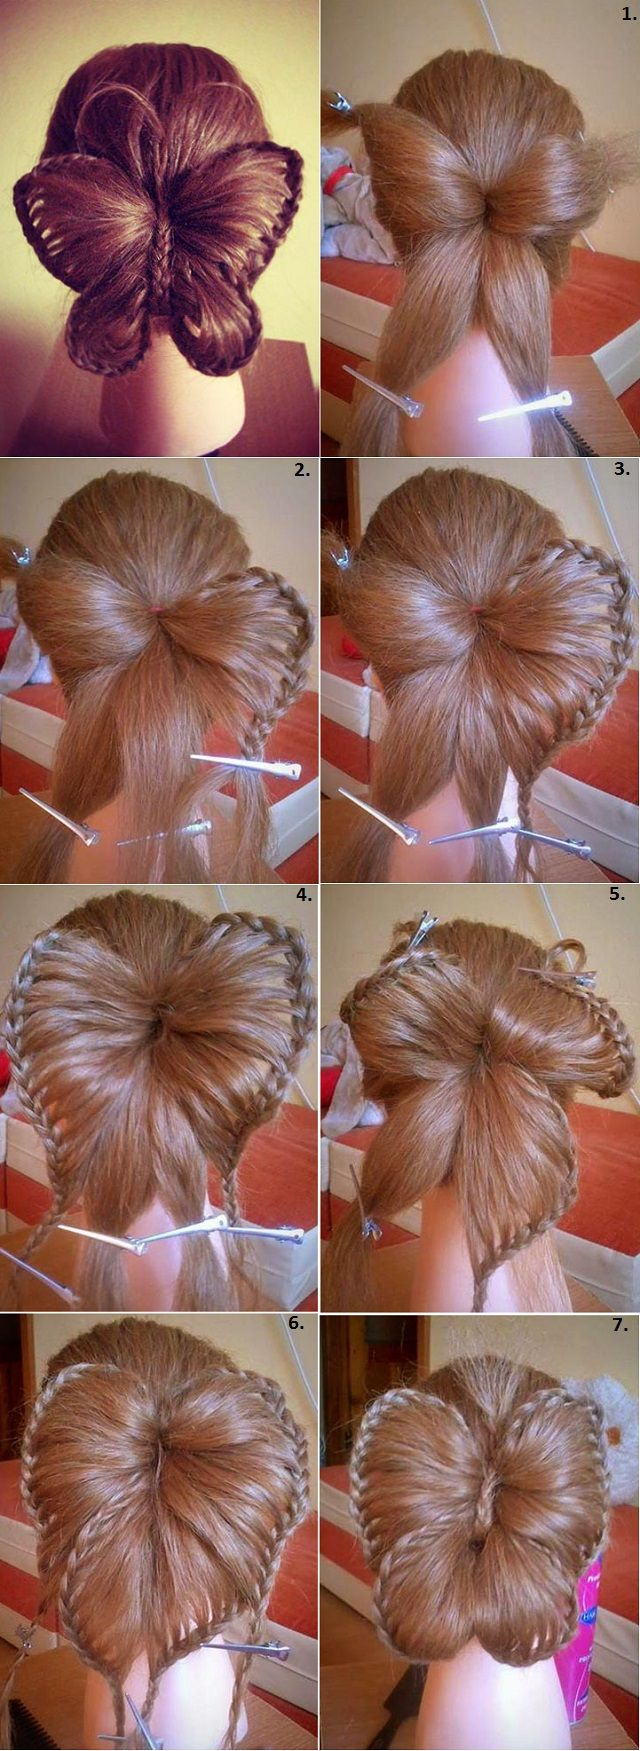 best 25+ butterfly hairstyle ideas on pinterest | butterfly braid